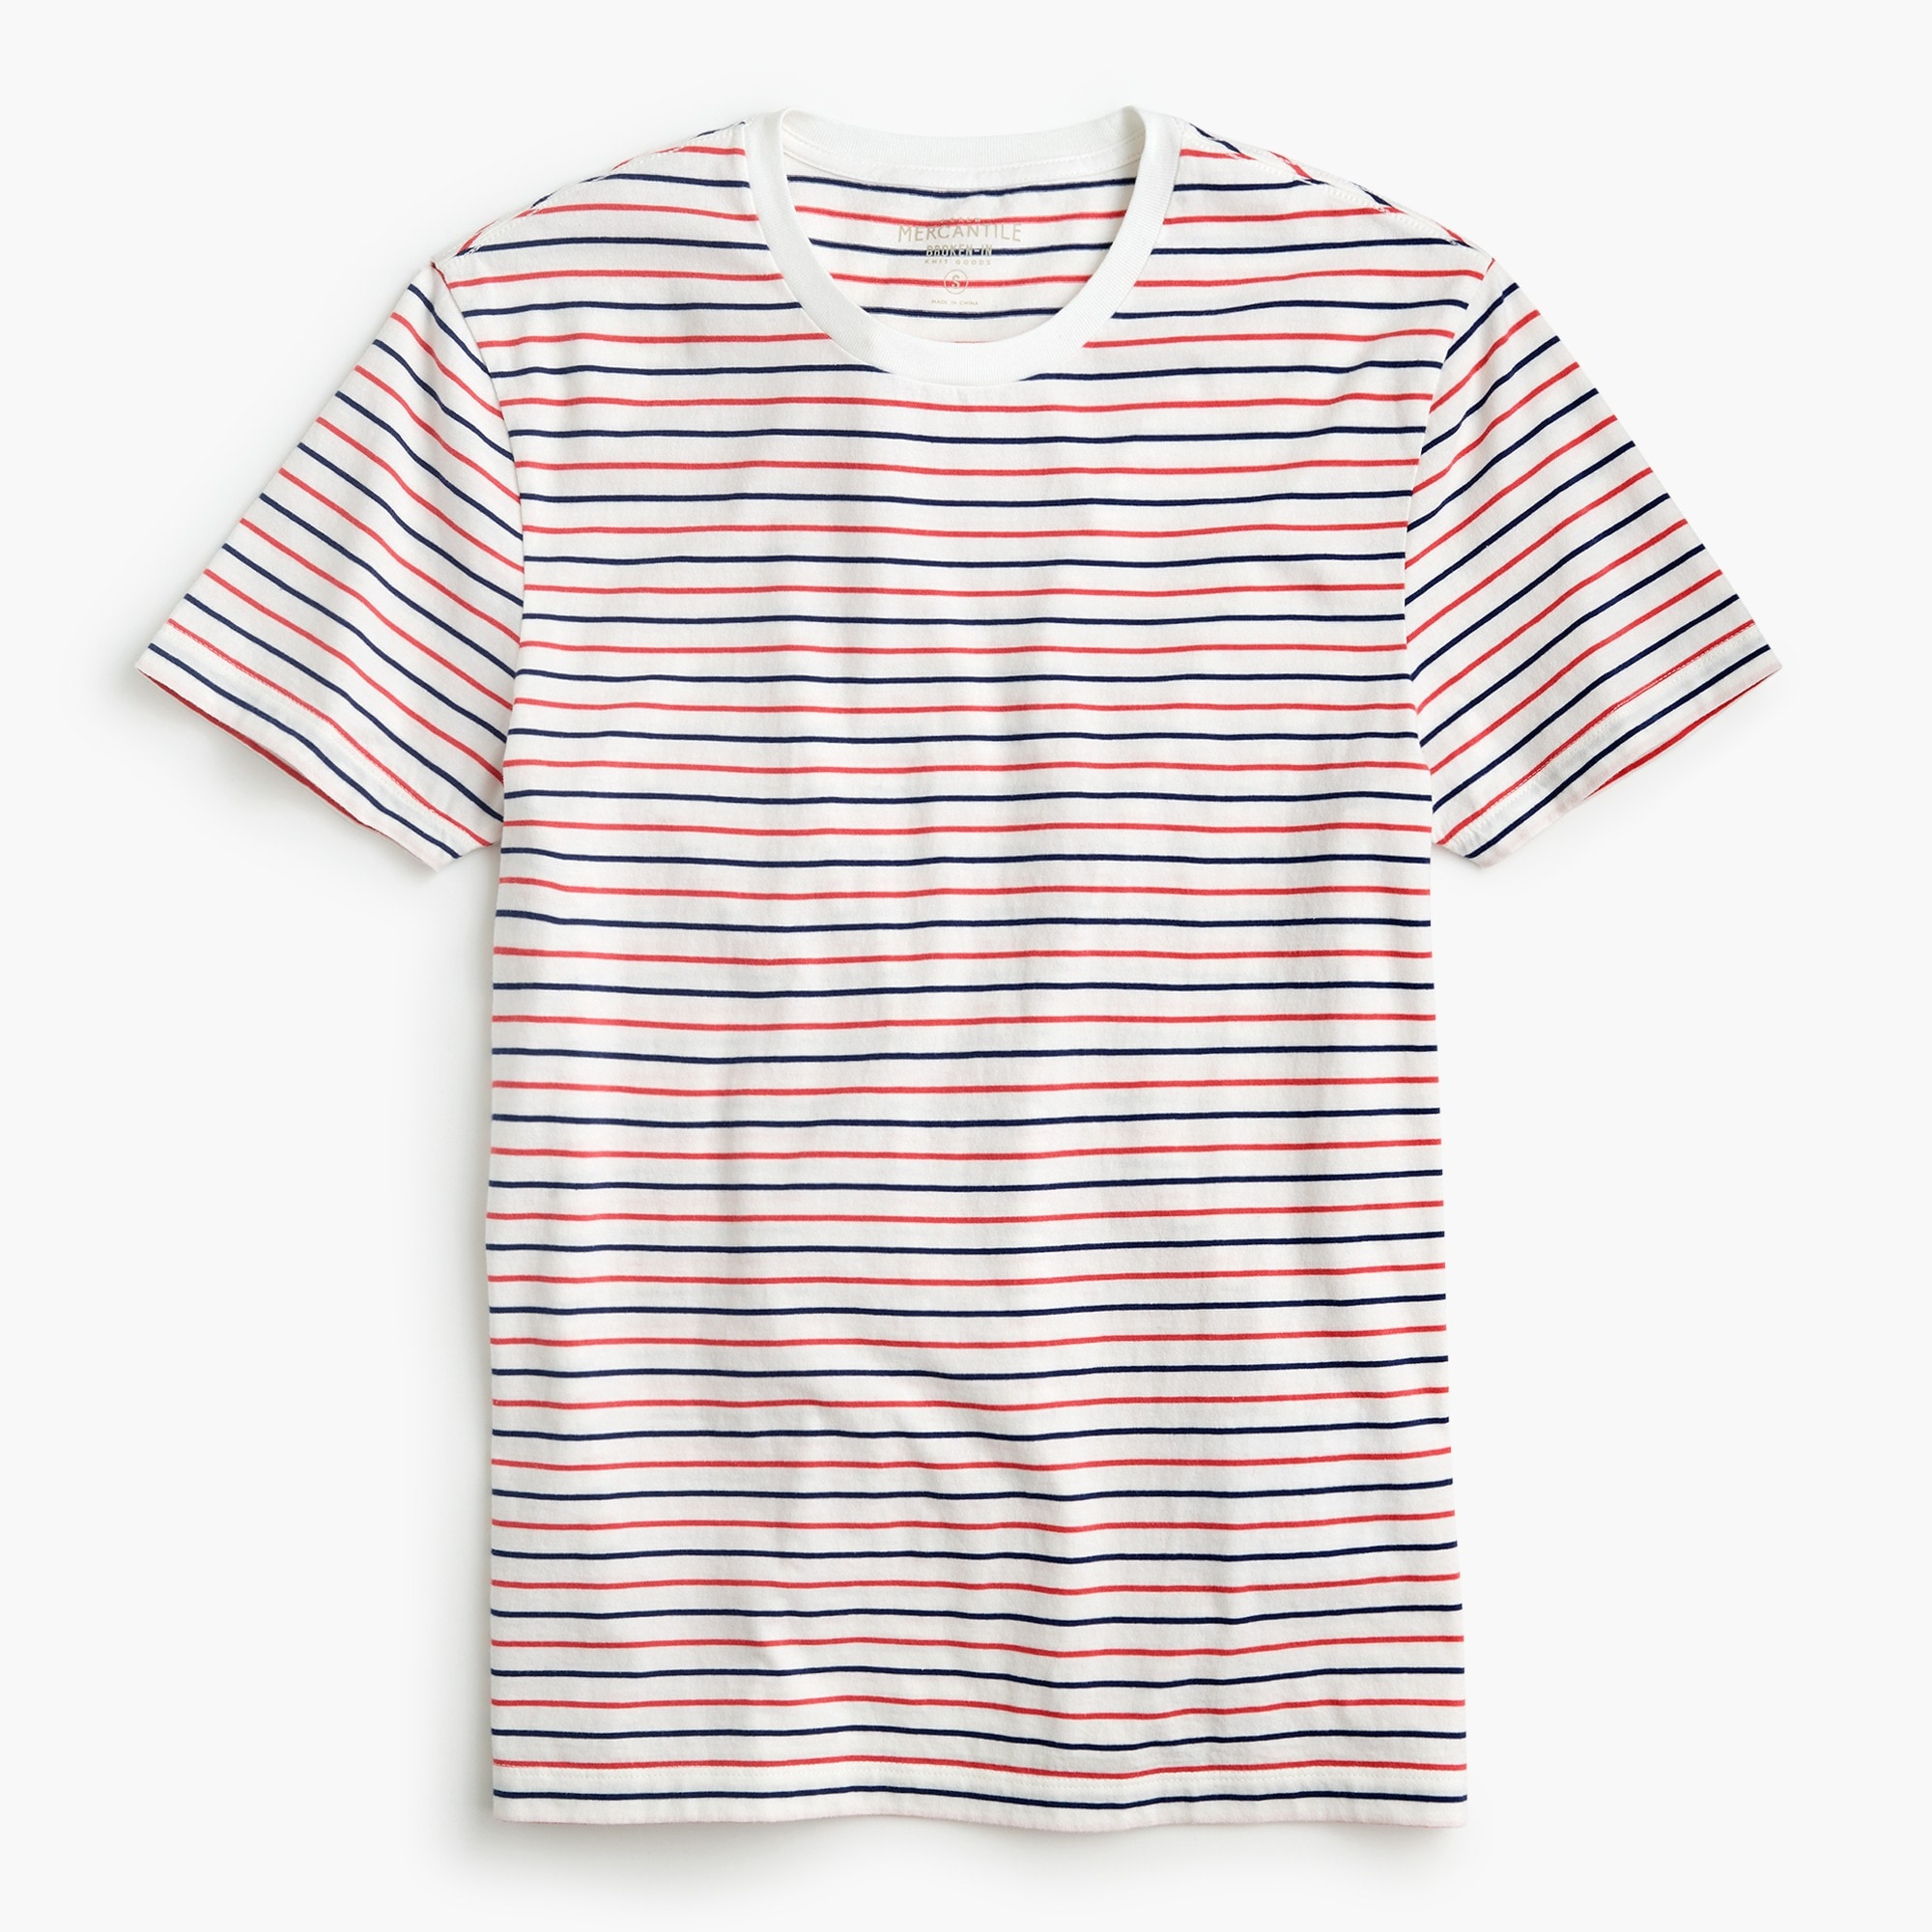 Tall J.Crew Mercantile Broken-in T-shirt in seaside stripe